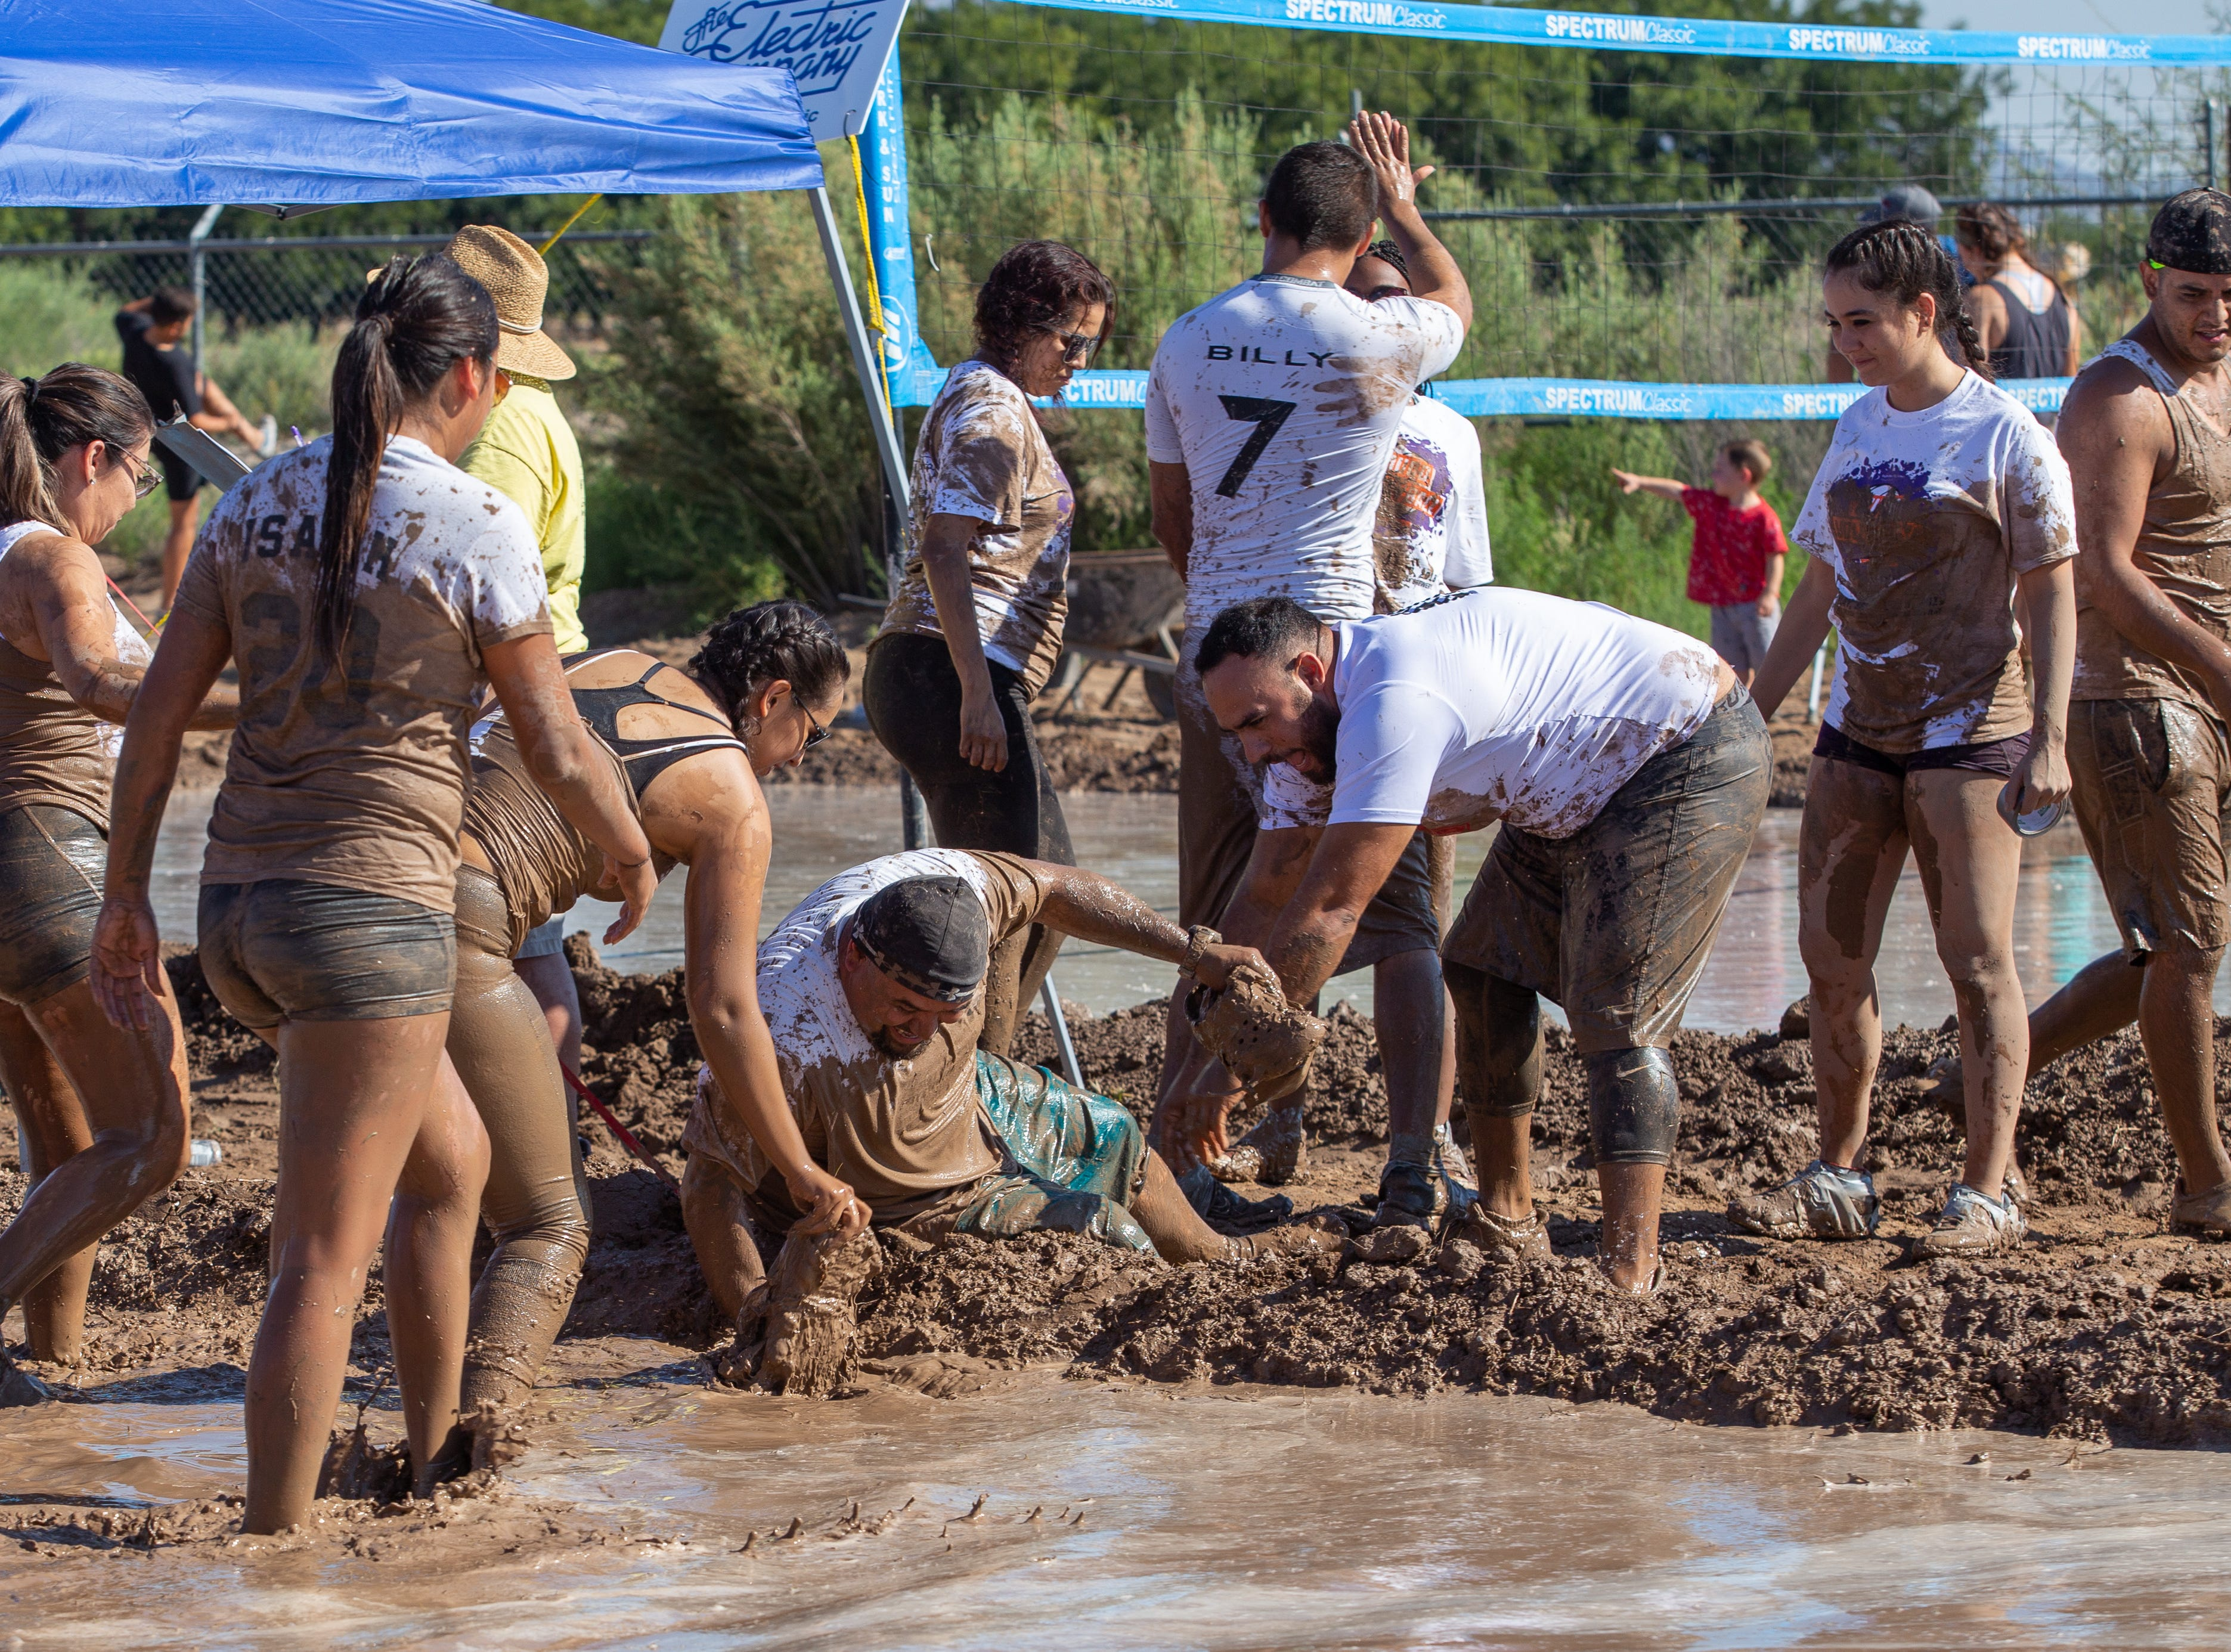 Sticky mud became a problem for Hugo Morales of El Paso Mud Dogs as he loses both his shoes at the 9th Annual Mudd Volleyball tournament on September 8, 2018.